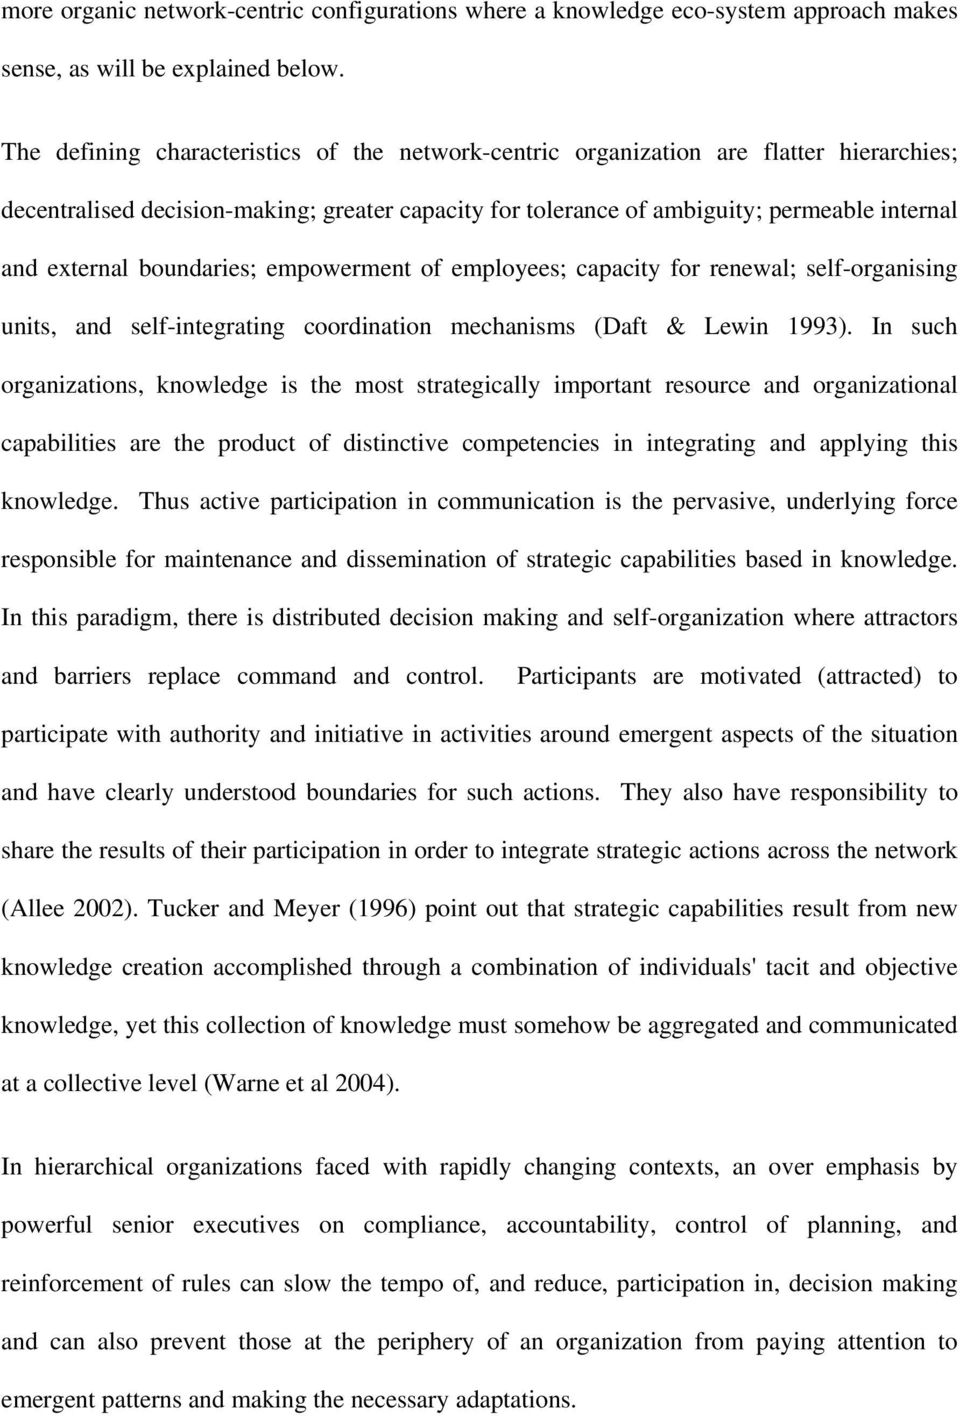 boundaries; empowerment of employees; capacity for renewal; self-organising units, and self-integrating coordination mechanisms (Daft & Lewin 1993).